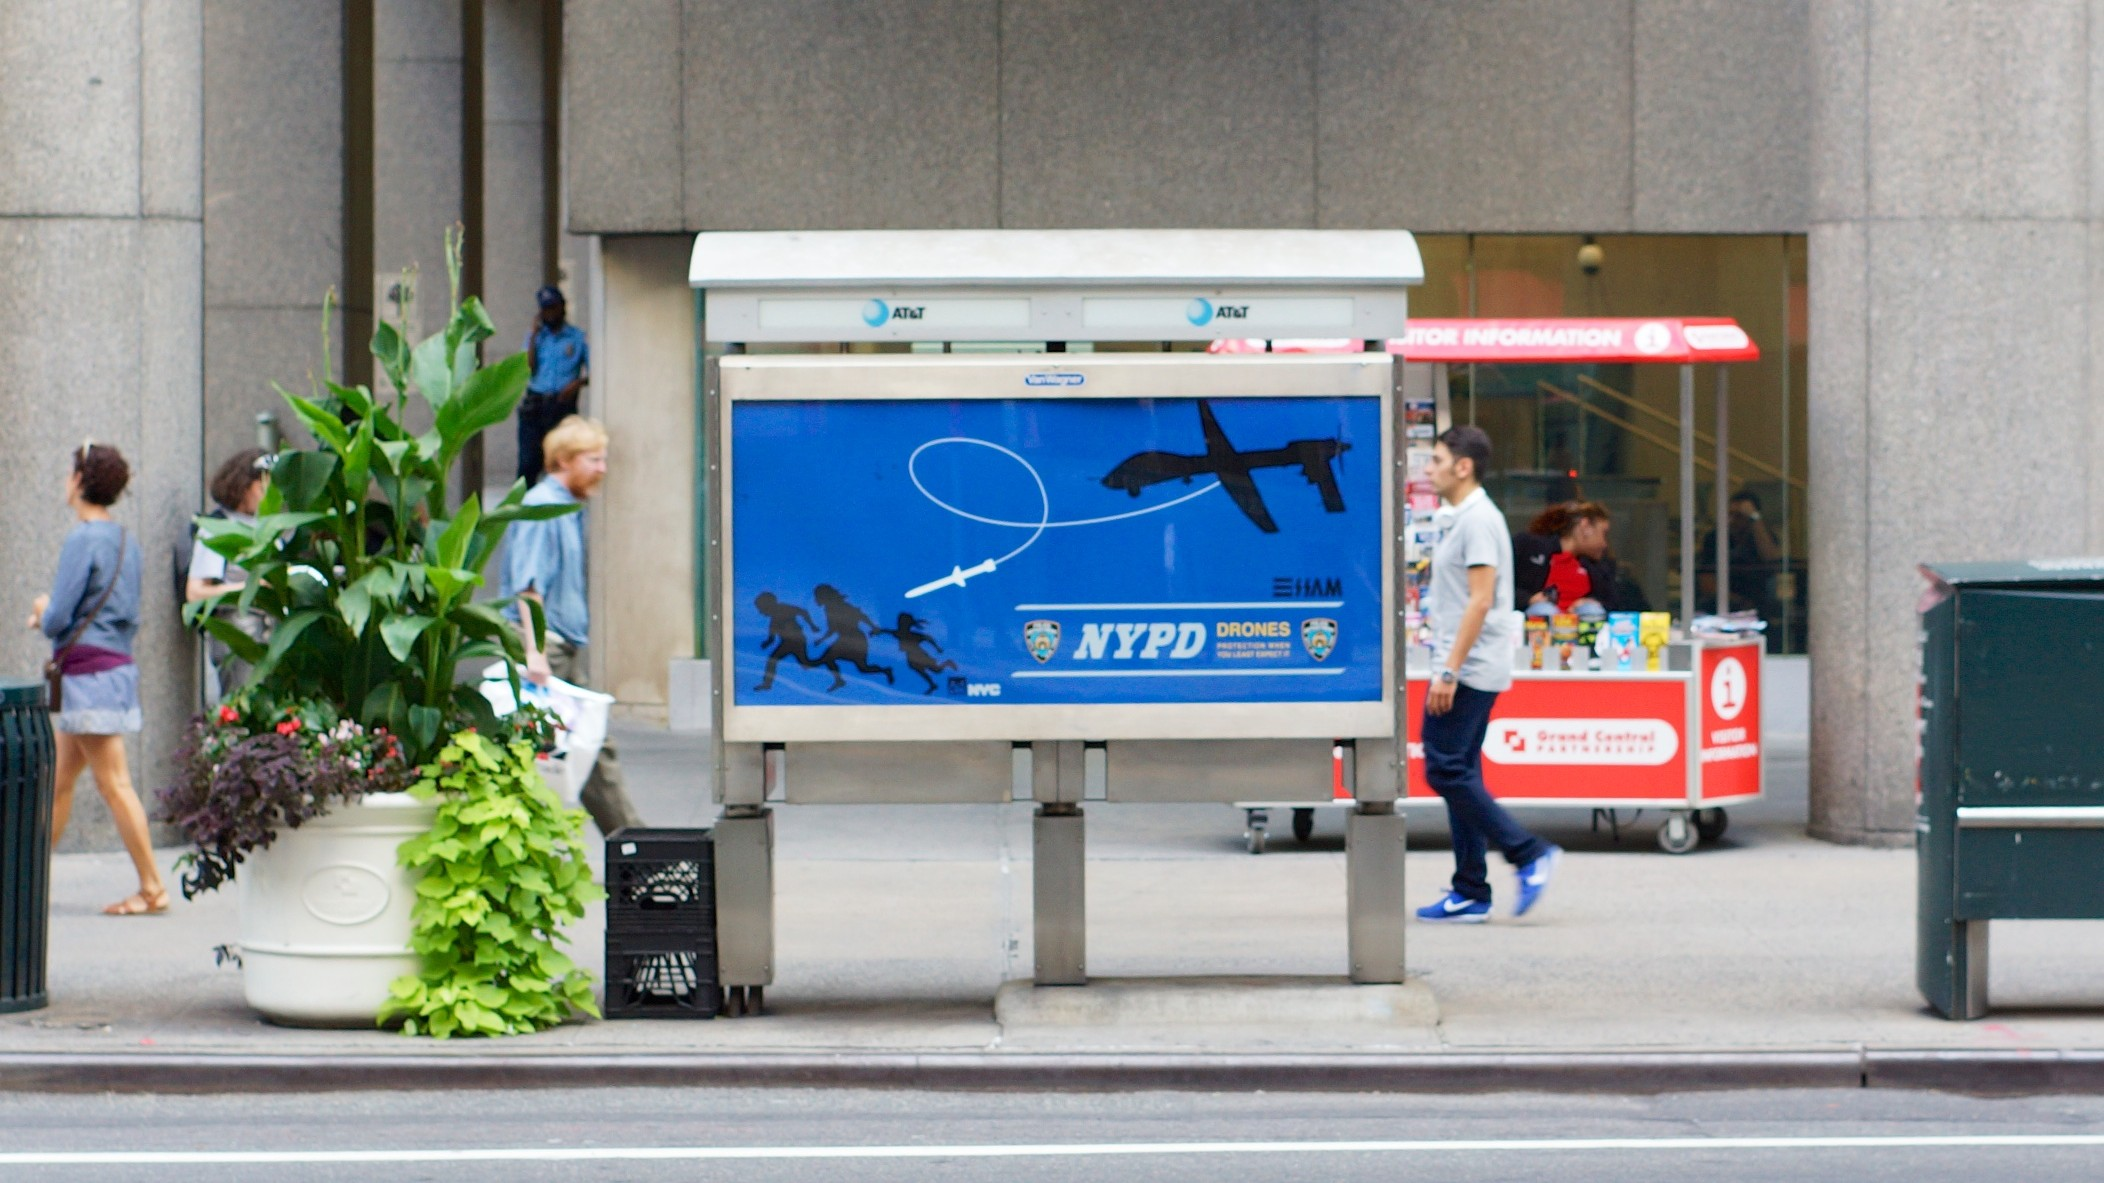 The NYPD Refuses to Release Its Drone Documents, So I'm Suing